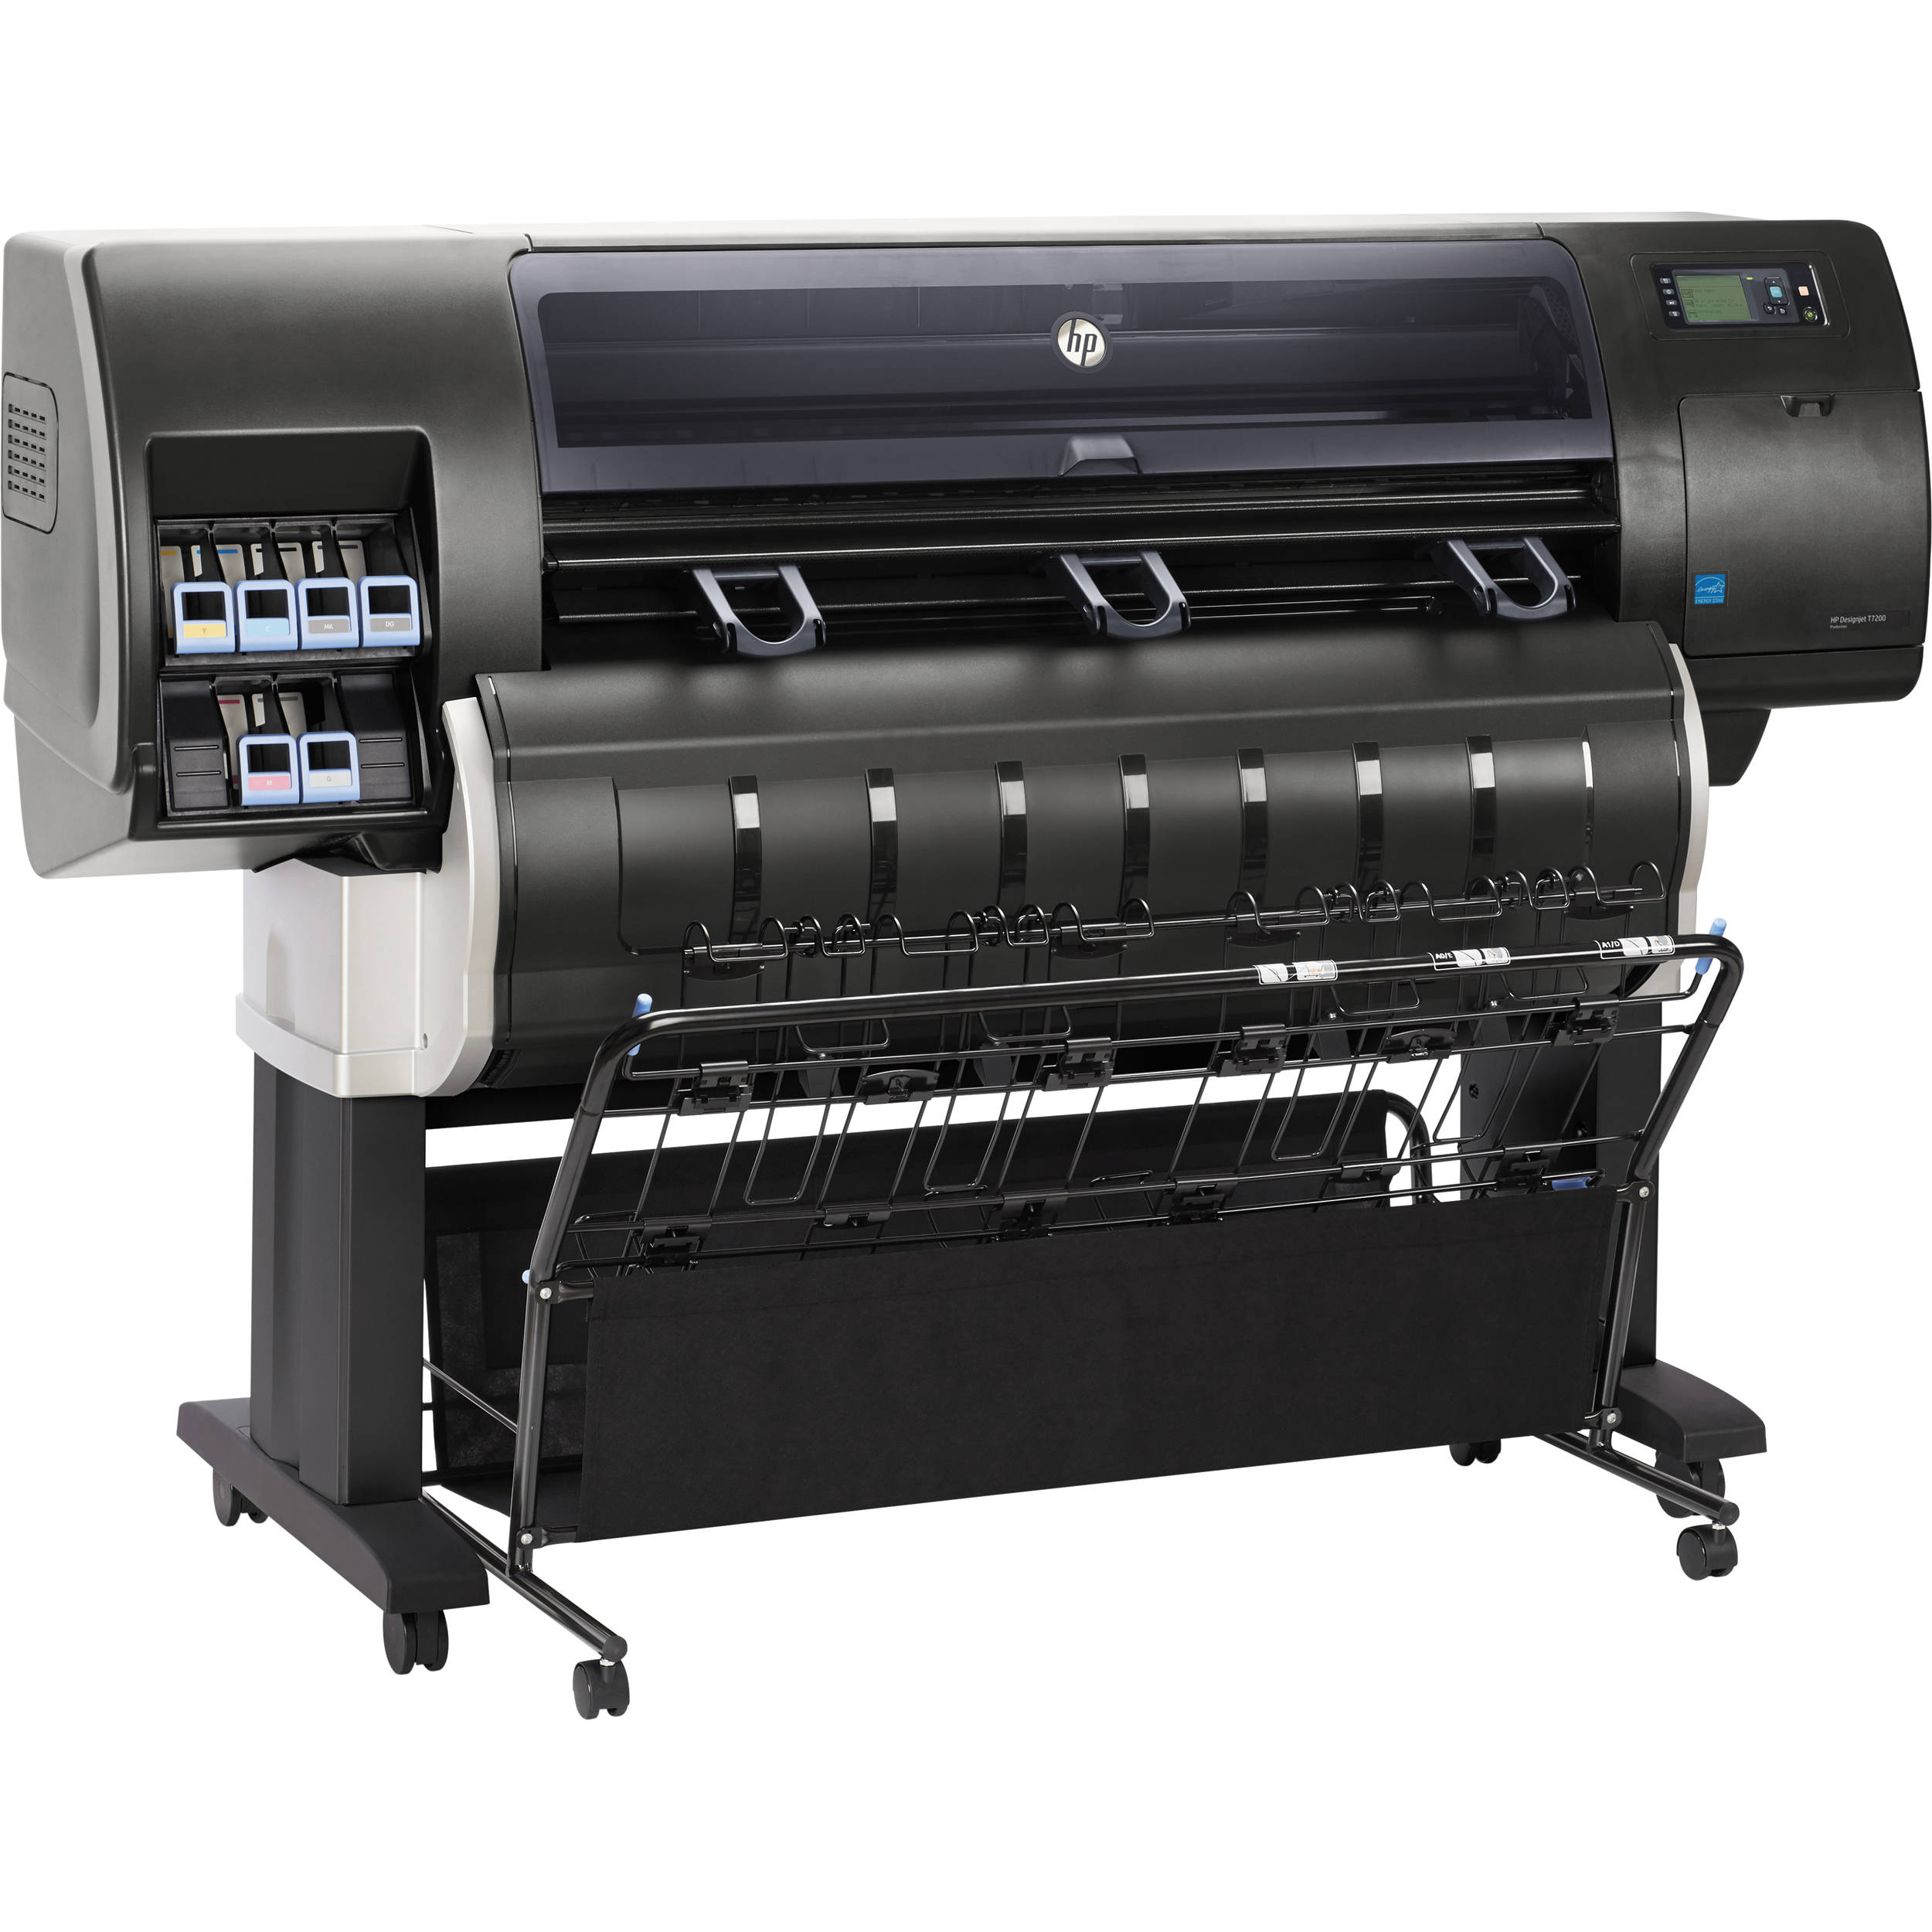 HP DesignJet T7200 42-in Production Printer , New (F2L46A)